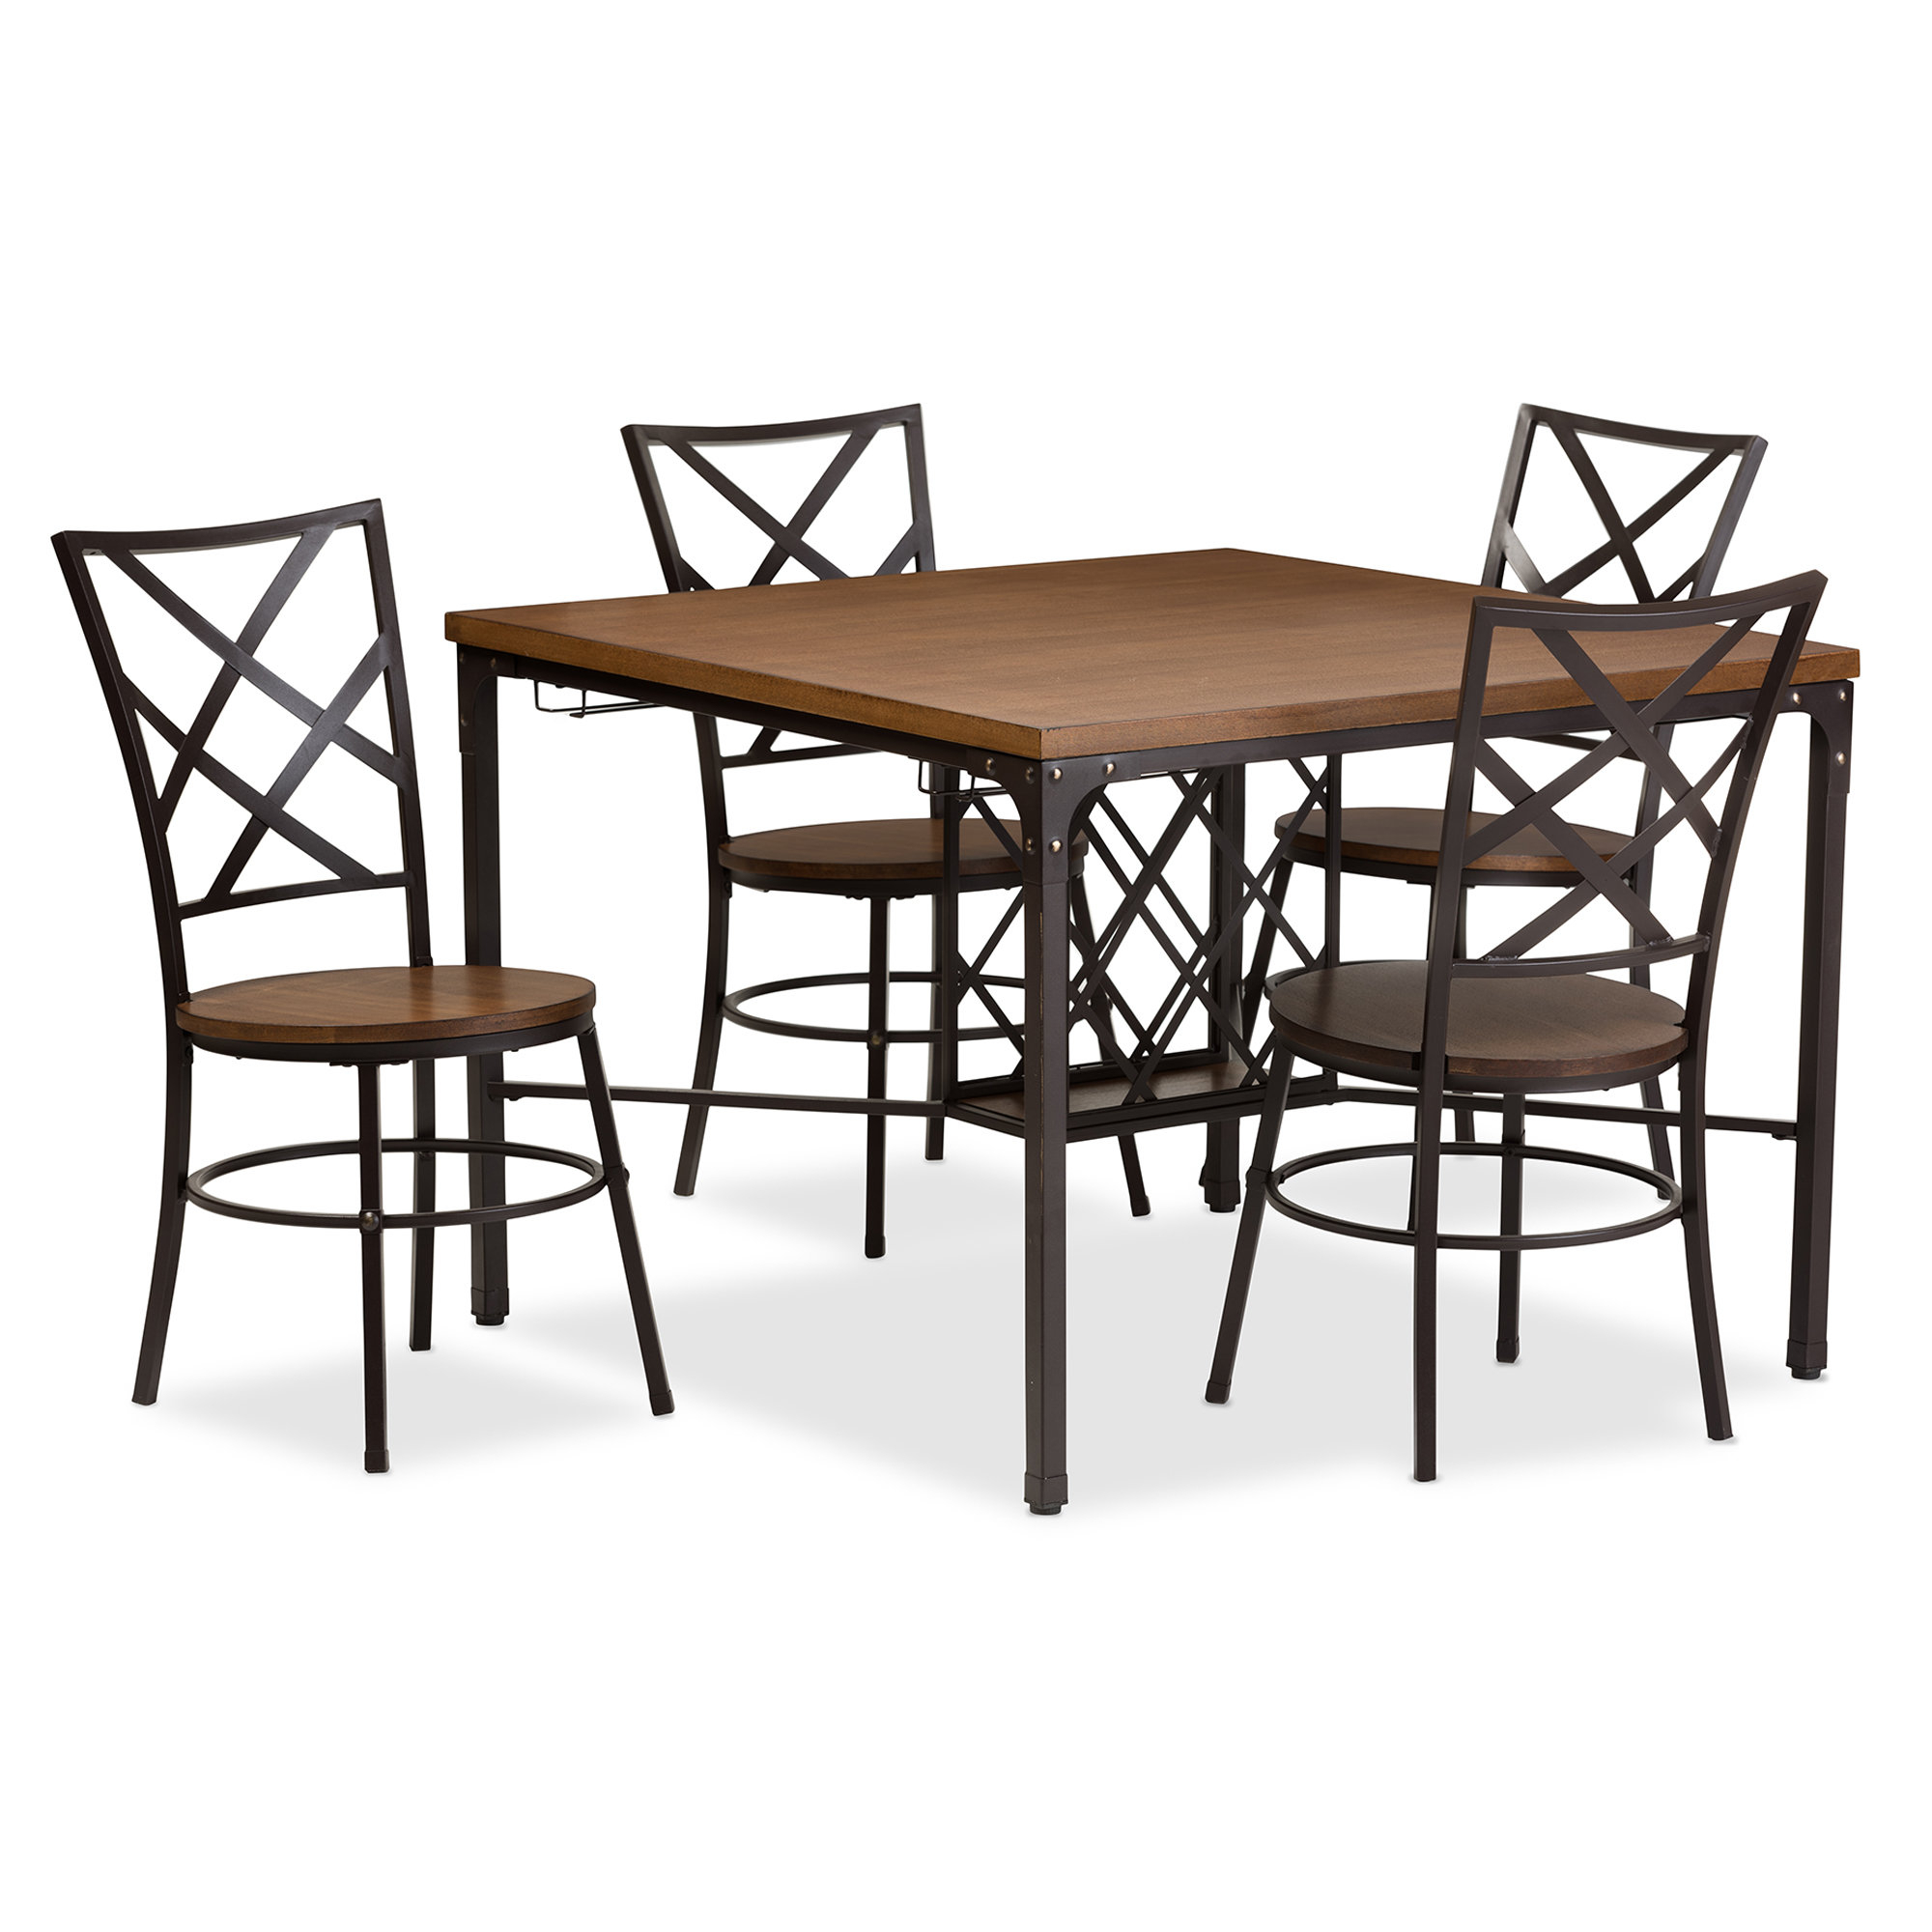 Calla 5 Piece Dining Set With Most Current Calla 5 Piece Dining Sets (Photo 1 of 20)